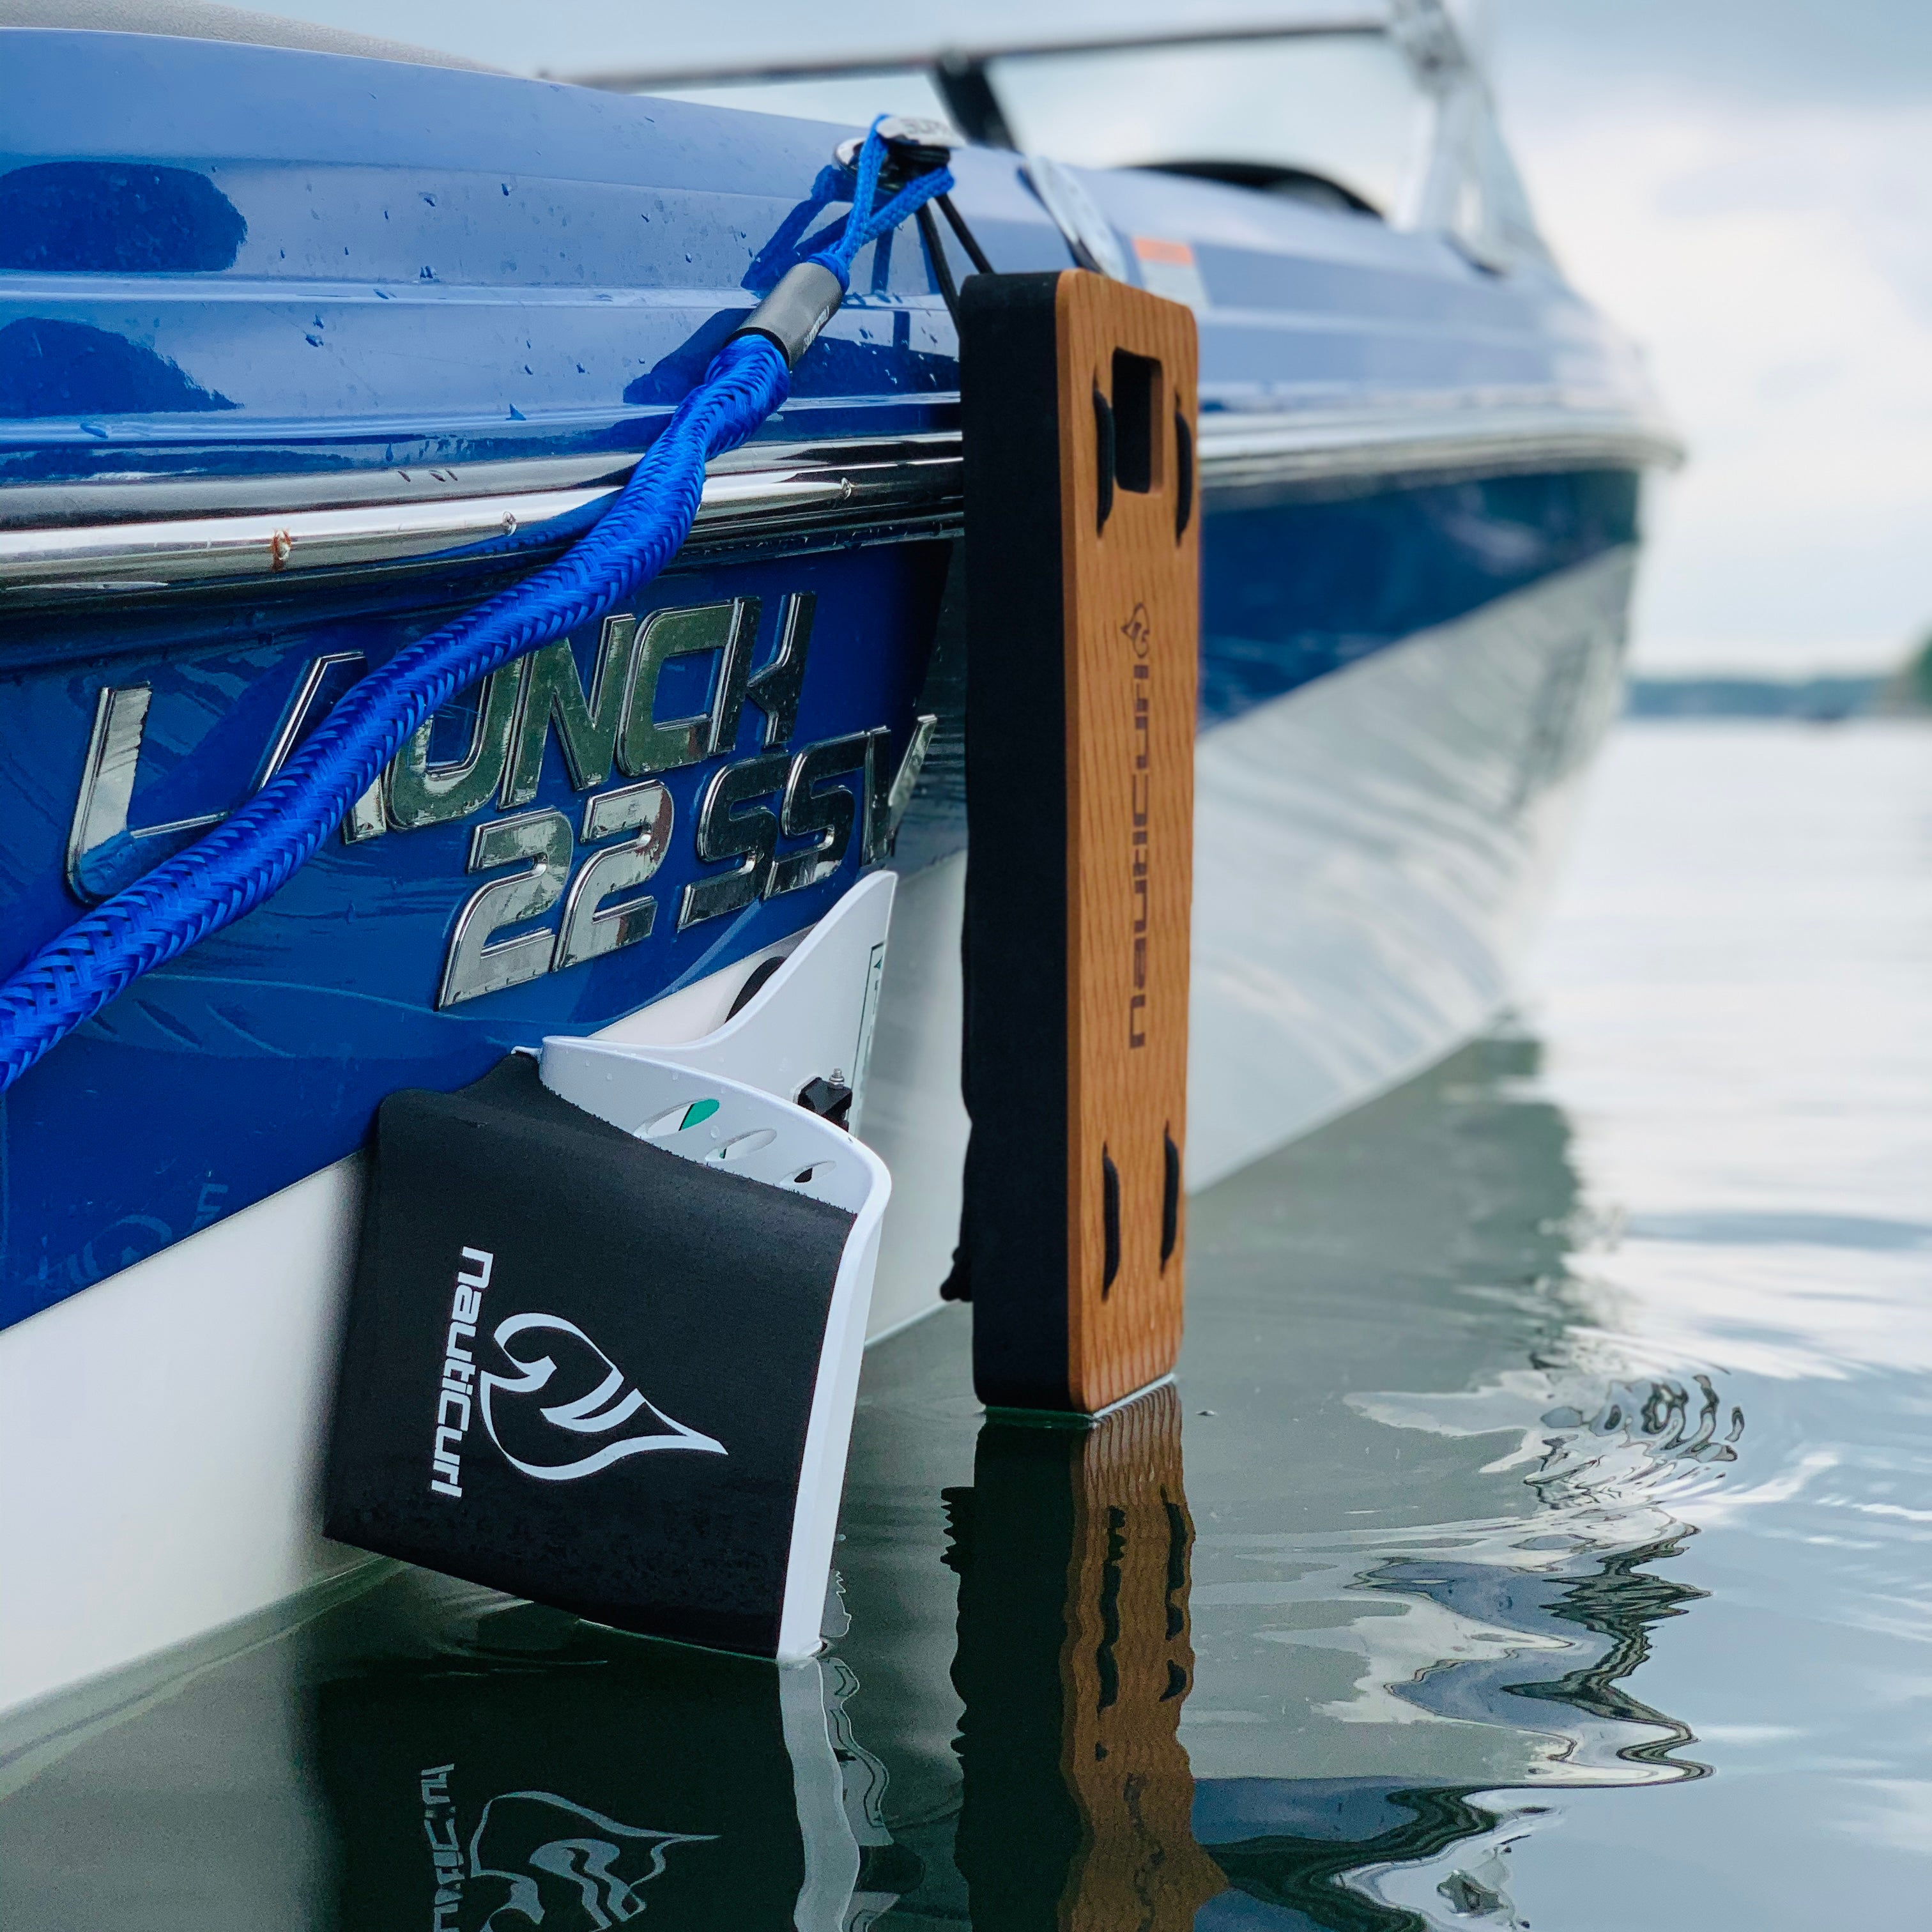 Fat sac ballast for sale, how to weight your boat for wakesurfing and wakeboarding